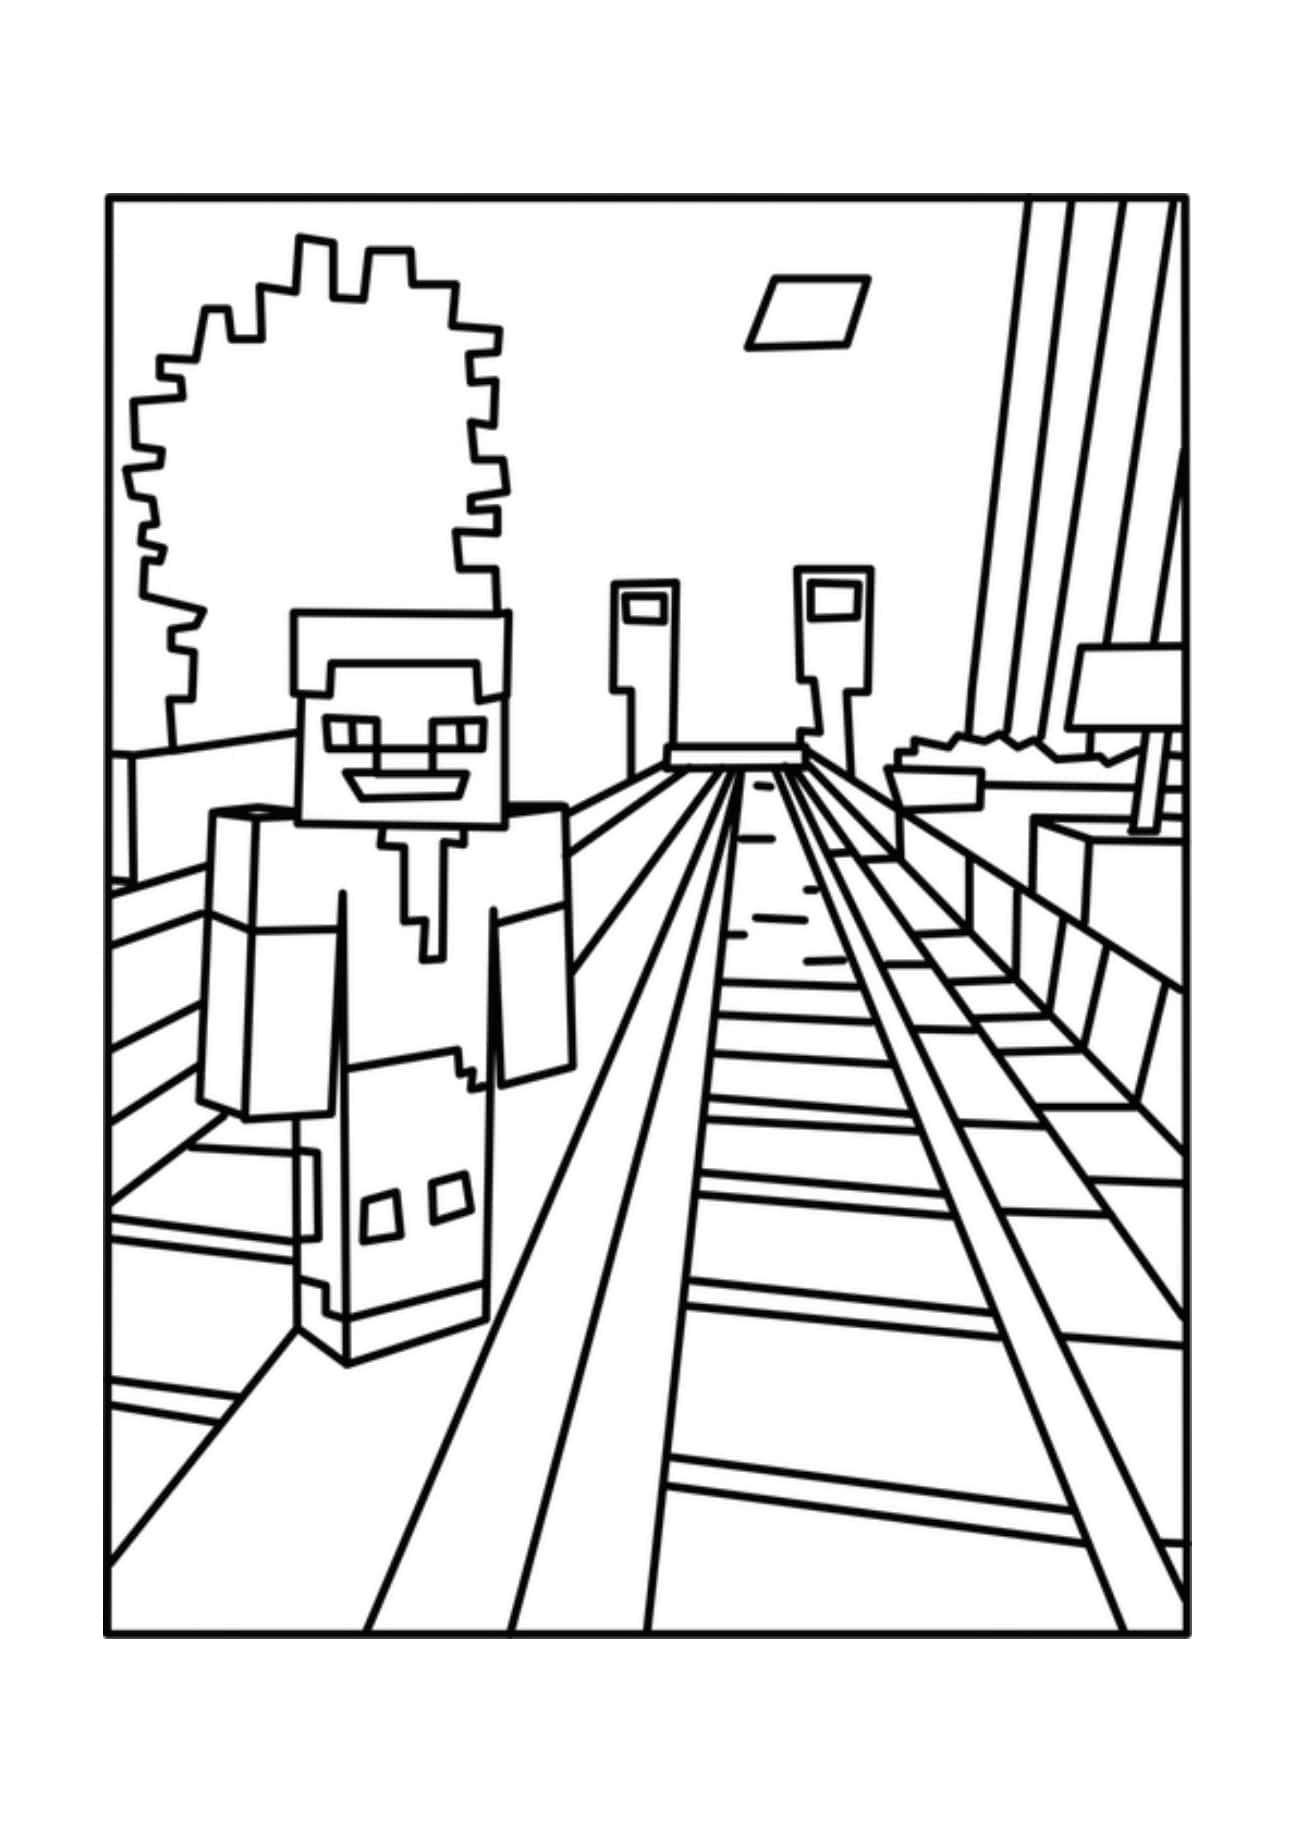 Minecraft Coloring Pages Print Them For Free 100 Pictures From The Game